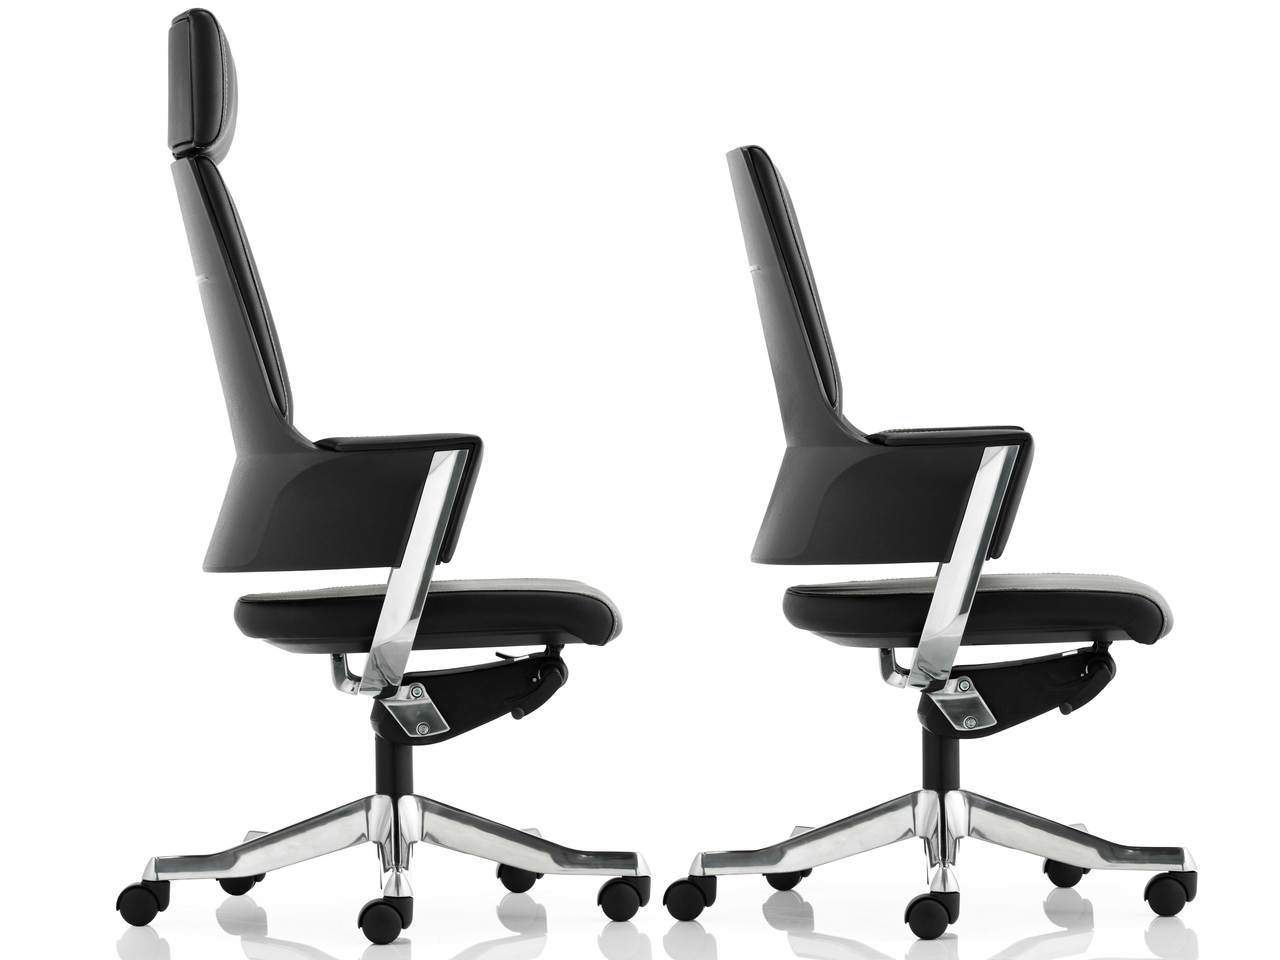 Enterprise Executive Office Chair in Tan or Black Fabric or Leather